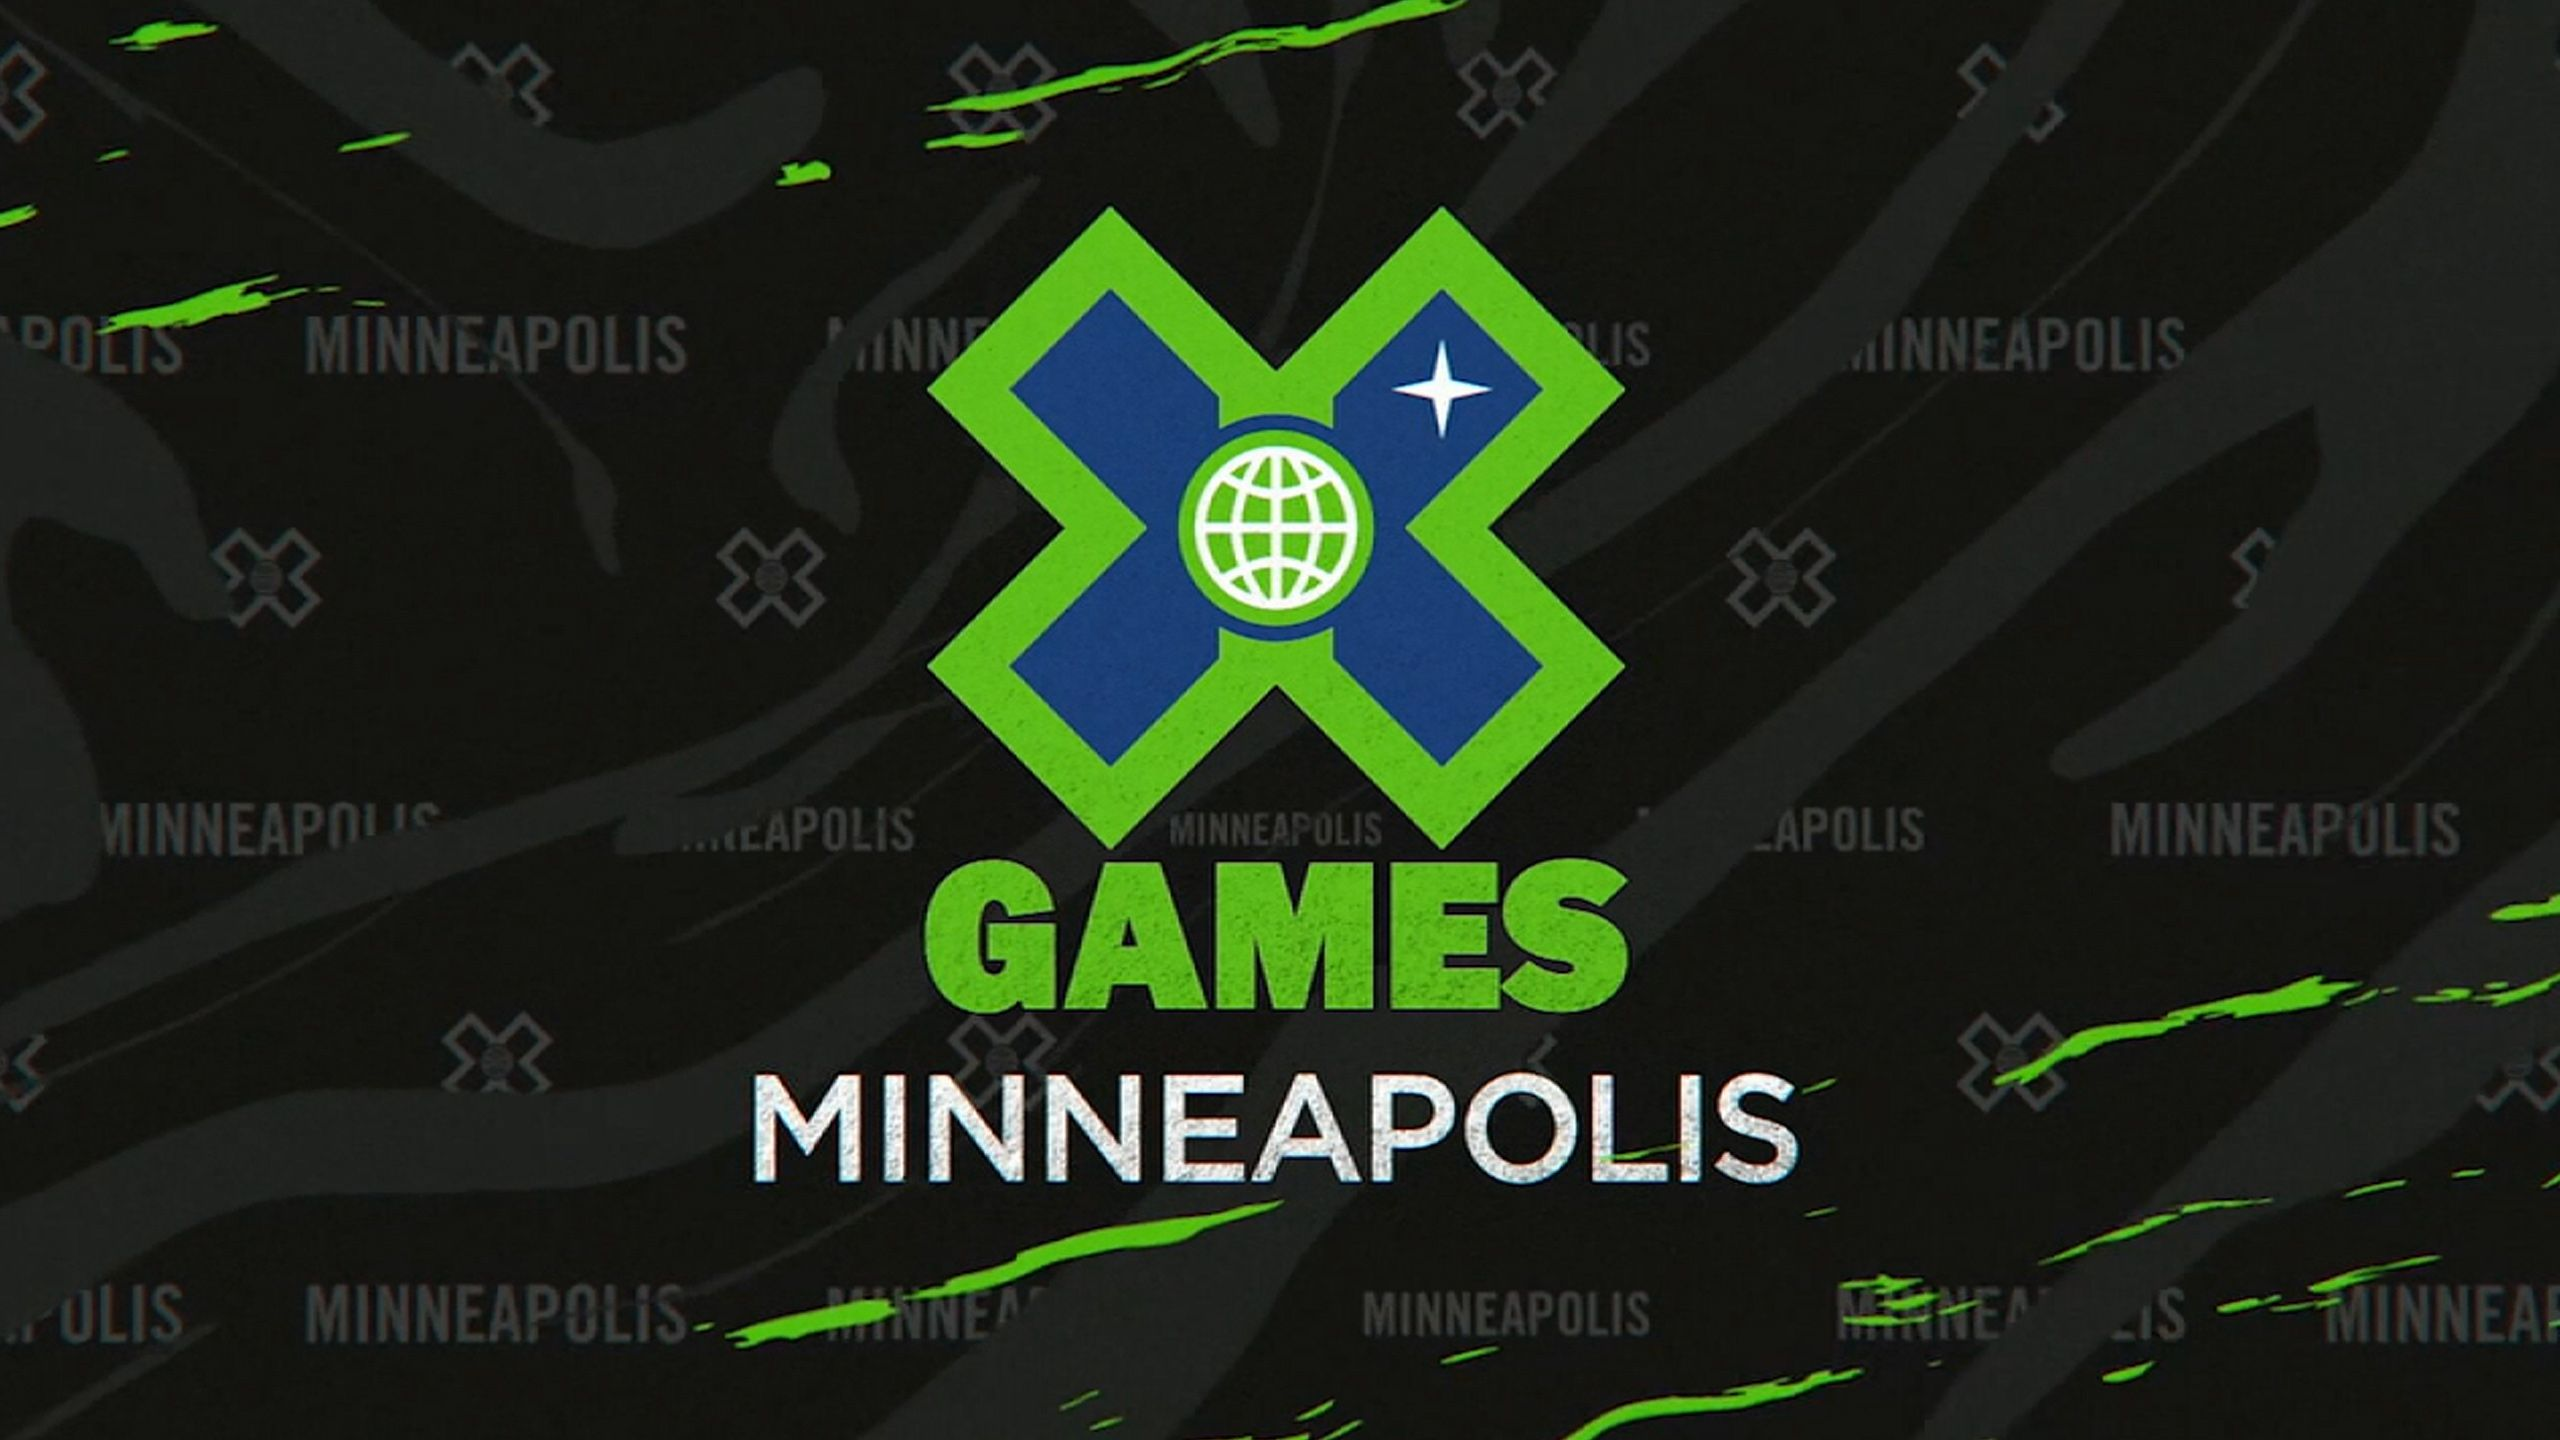 In Spanish - X Games Minneapolis 2018